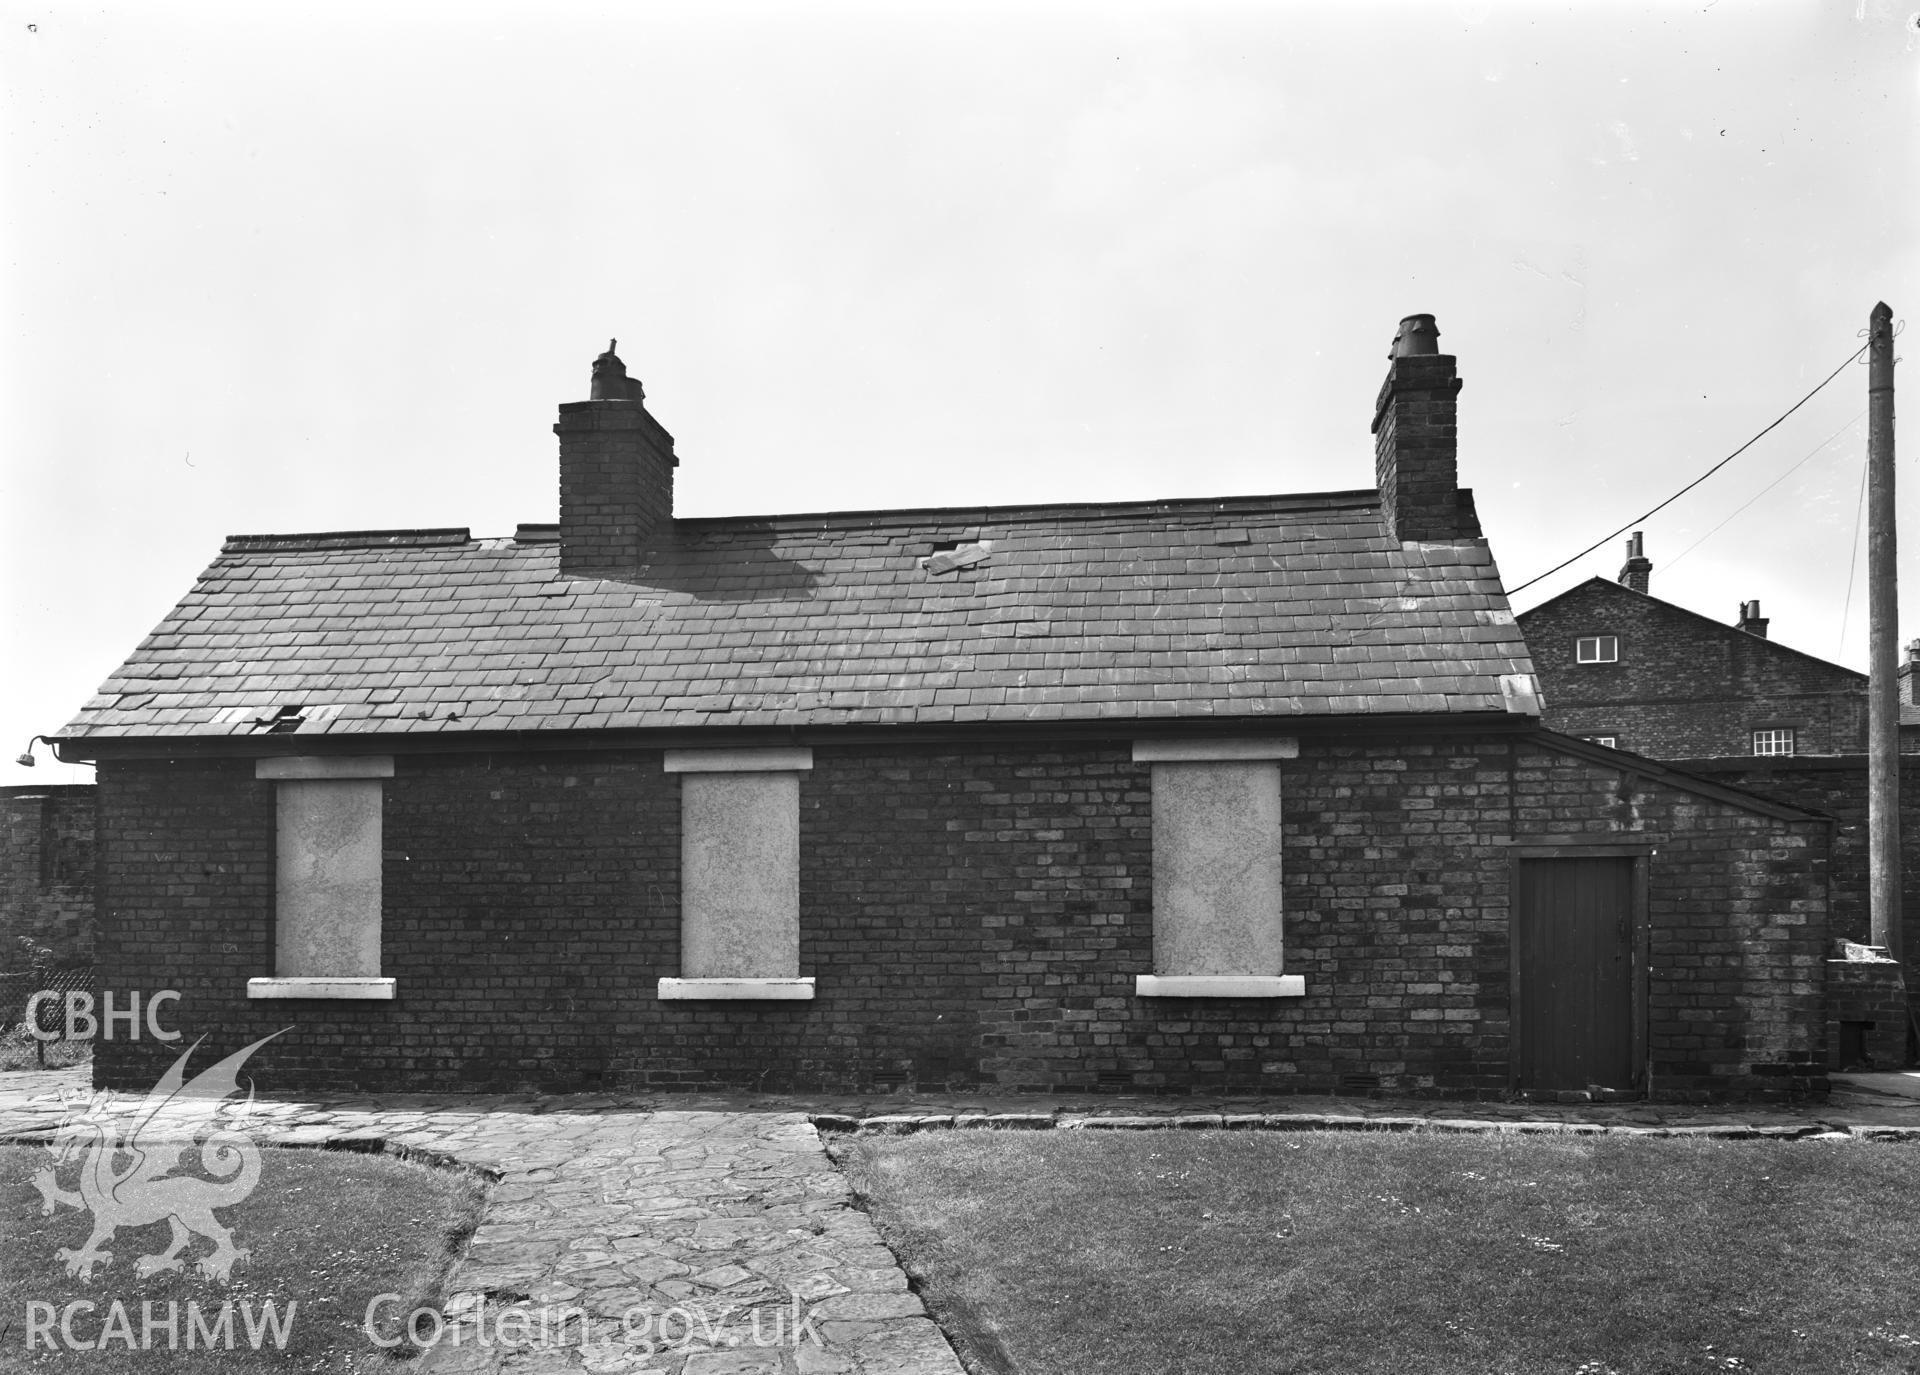 D.O.E photograph of Flint Gaol - cottage from north east. In castle outer ward (since removed).